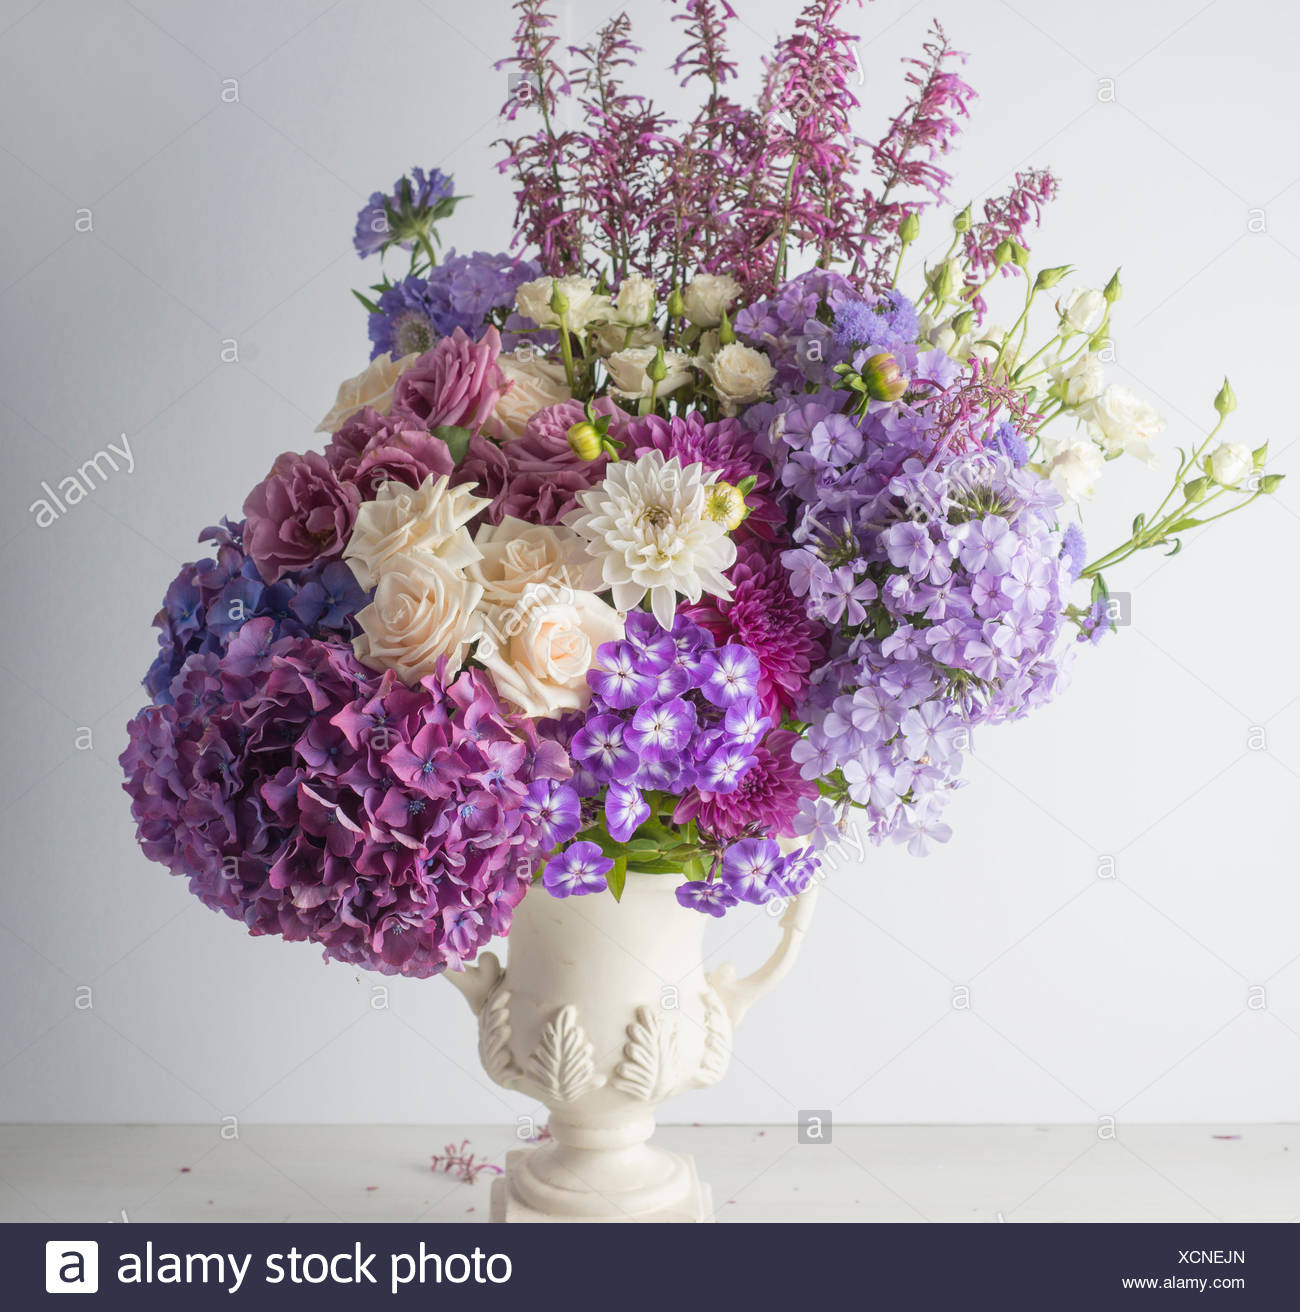 Formal Flower Bouquet With Hydrangea Roses Dahlias And Phlox Stock